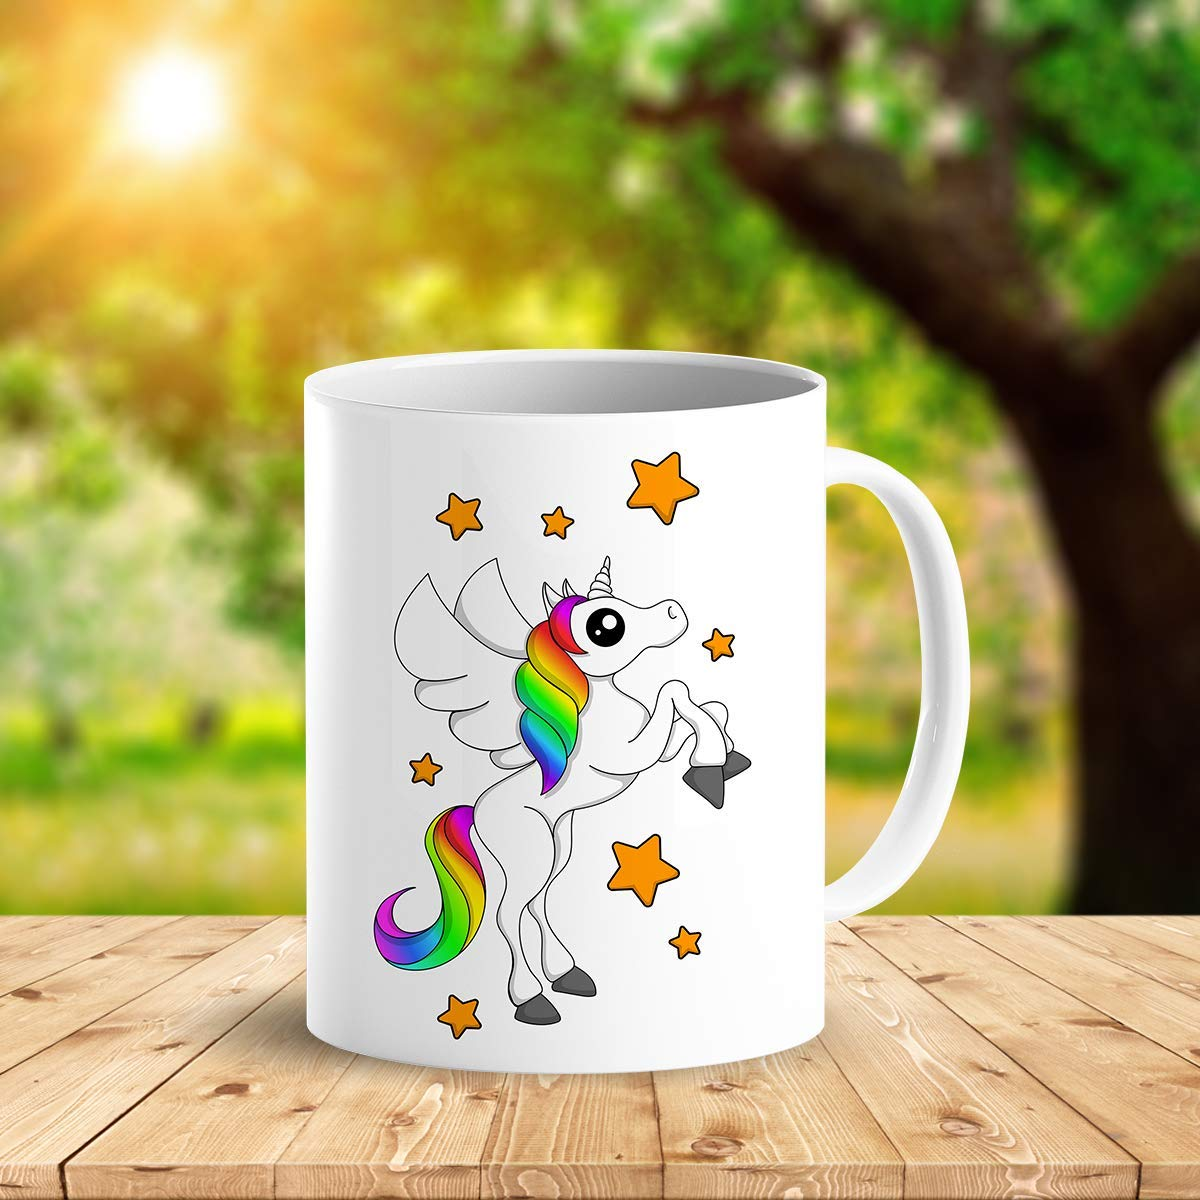 Heat Sensitive Color Changing Coffee Mug Funny Coffee Cup White Unicorn Design Funny Gift Idea B07D21VPWS 2